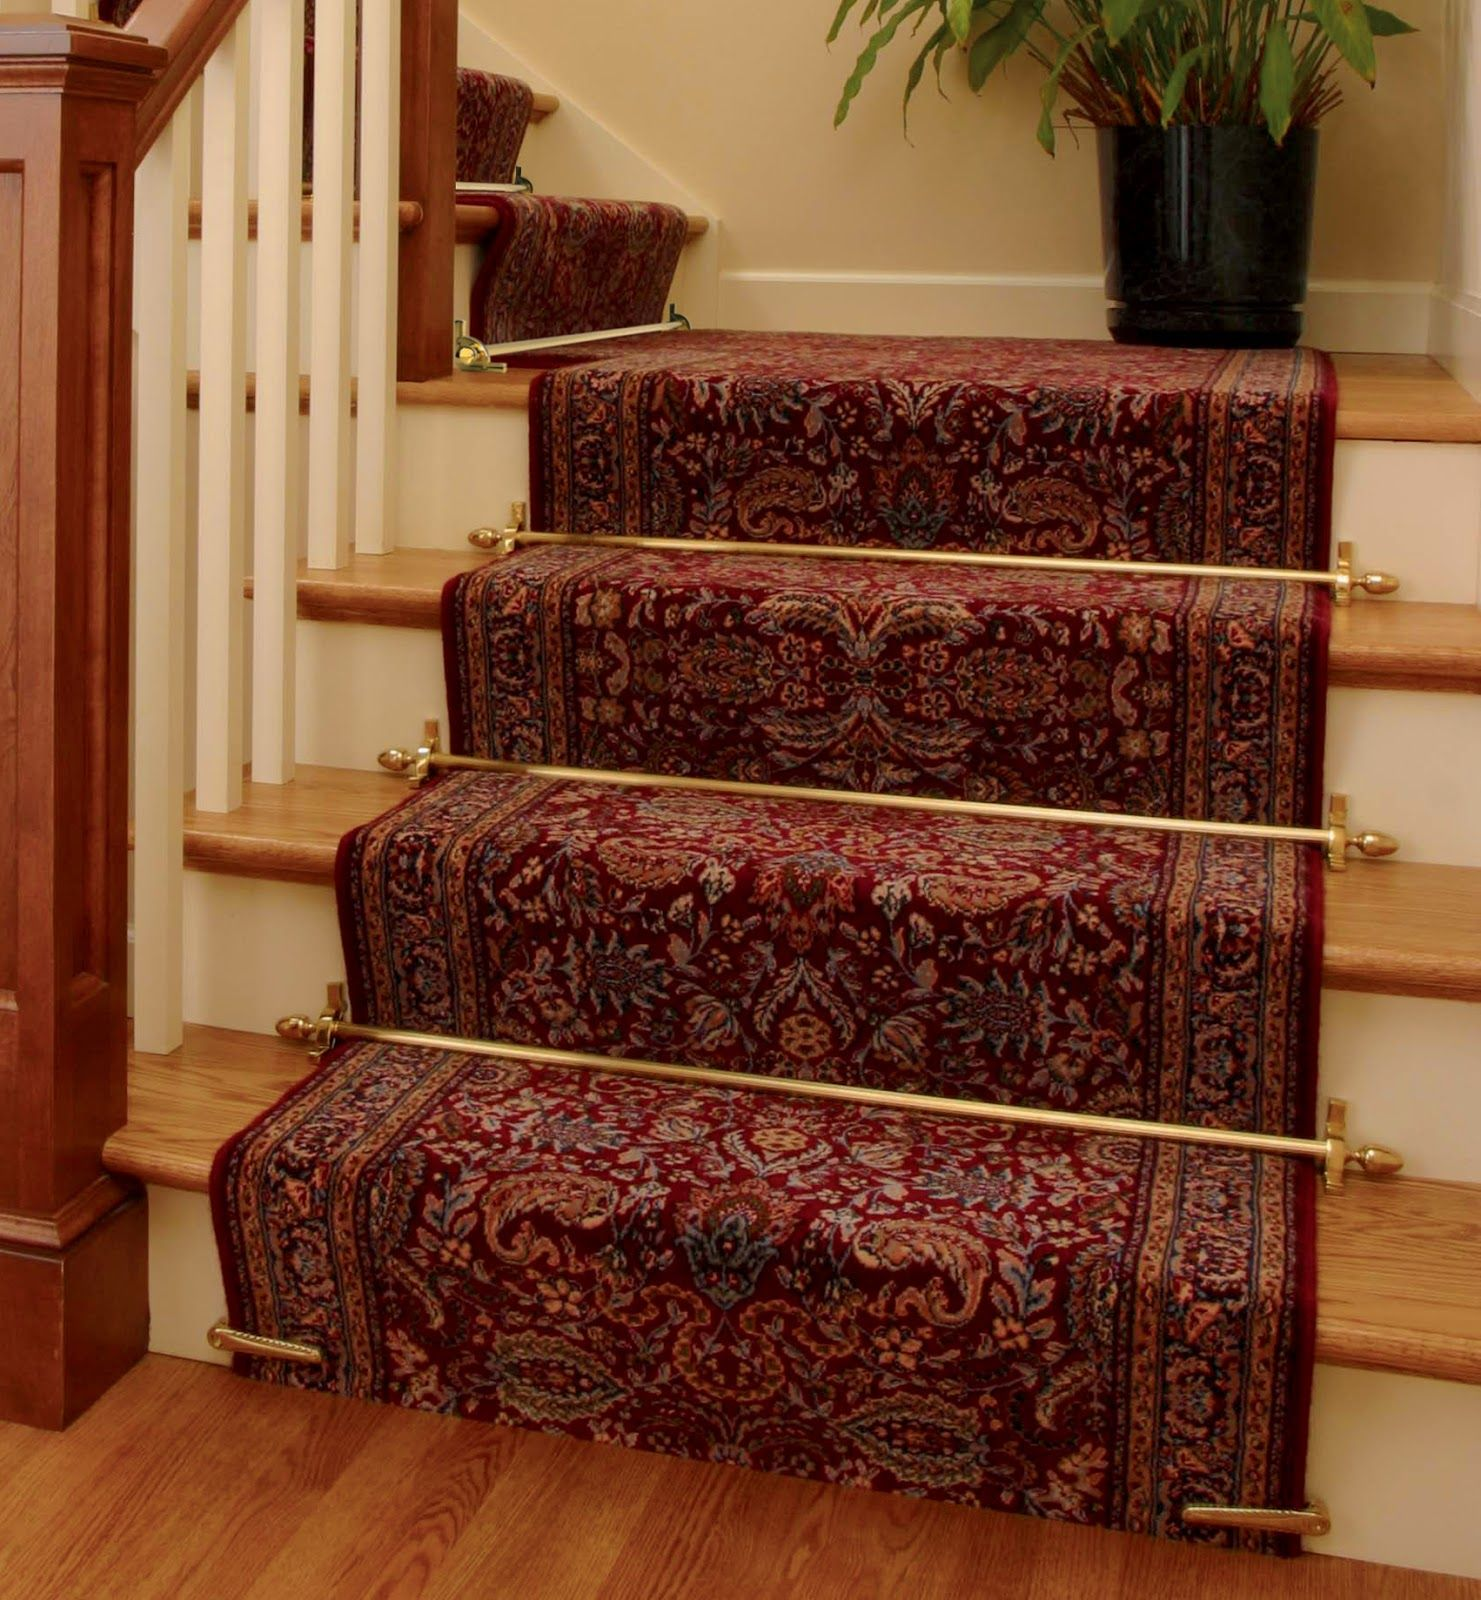 Zoroufy stair rods for carpet runners on stairs they will add a zoroufy stair rods for carpet runners on stairs they will add a beautiful touch to baanklon Choice Image